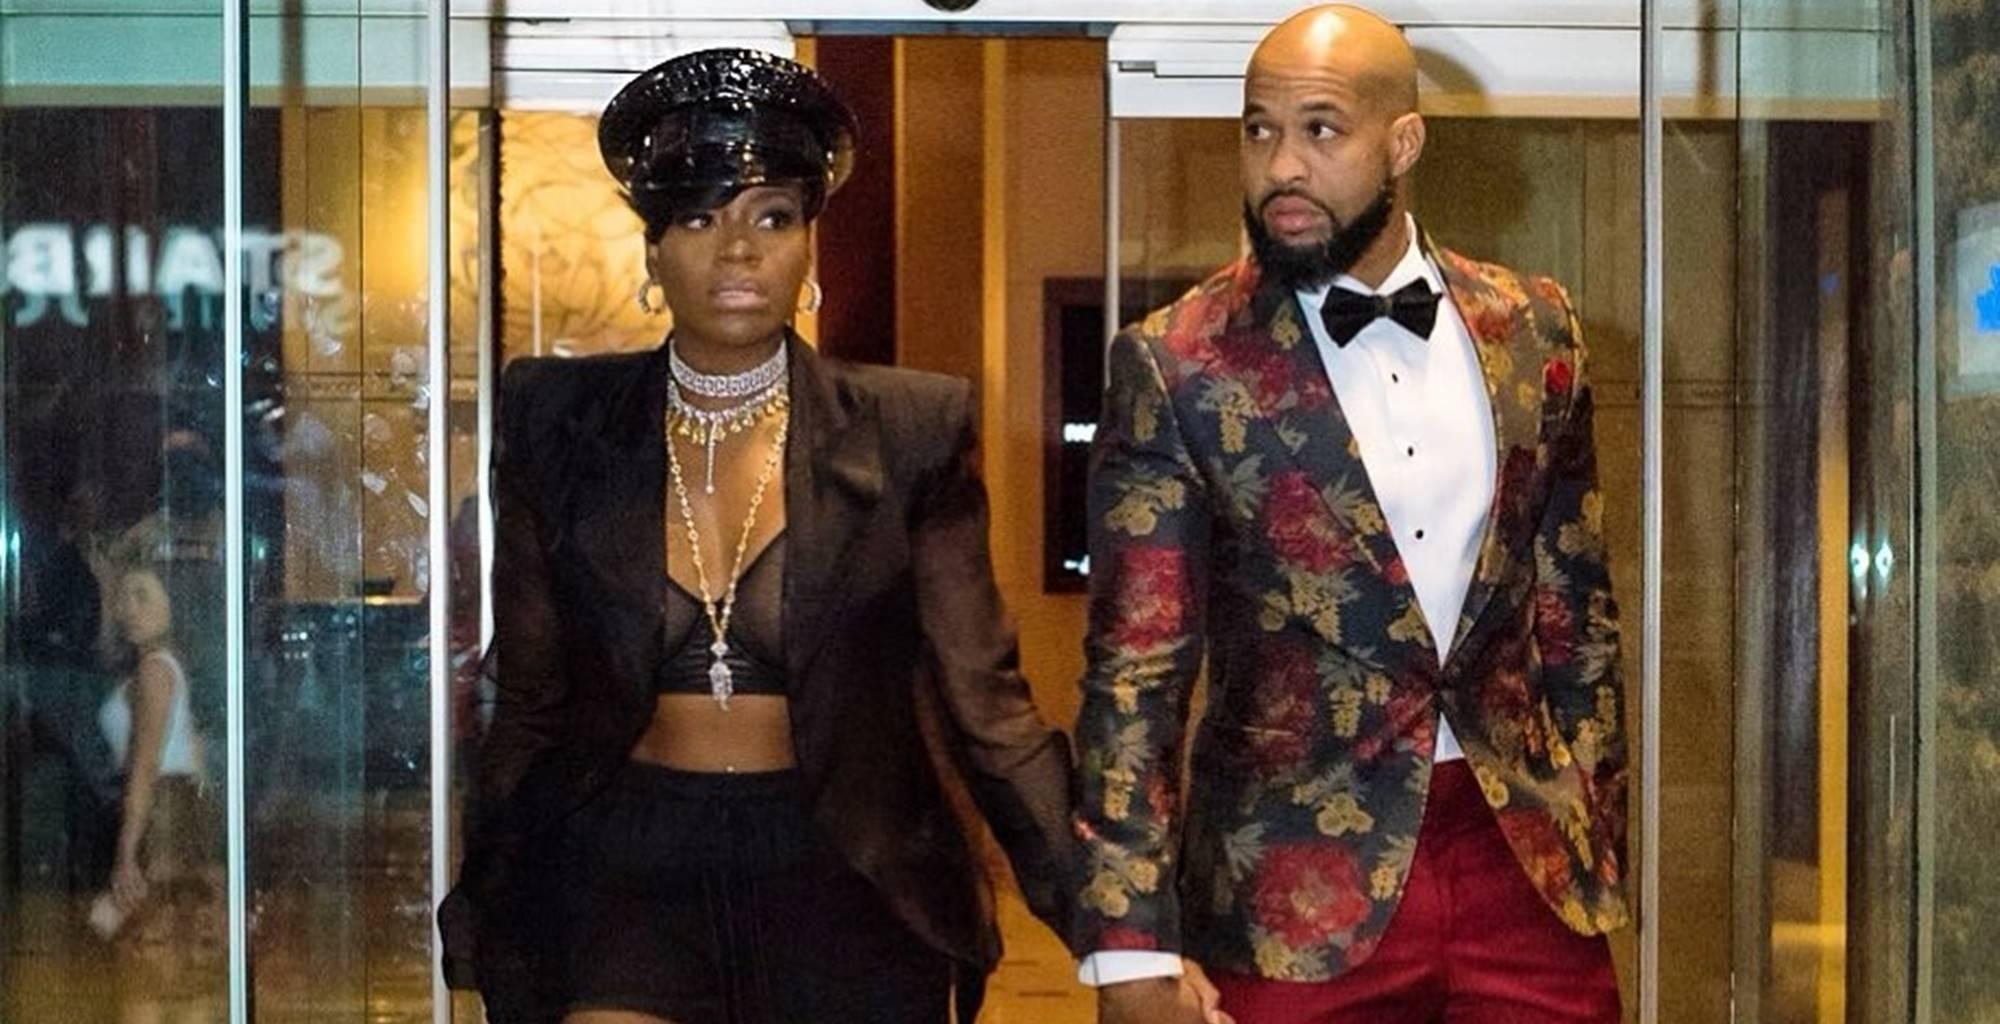 Fantasia Barrino And Her Husband, Kendall Taylor, Release New Video Explaining Why They Advise Single Women And Mothers To Be More Submissive To Men